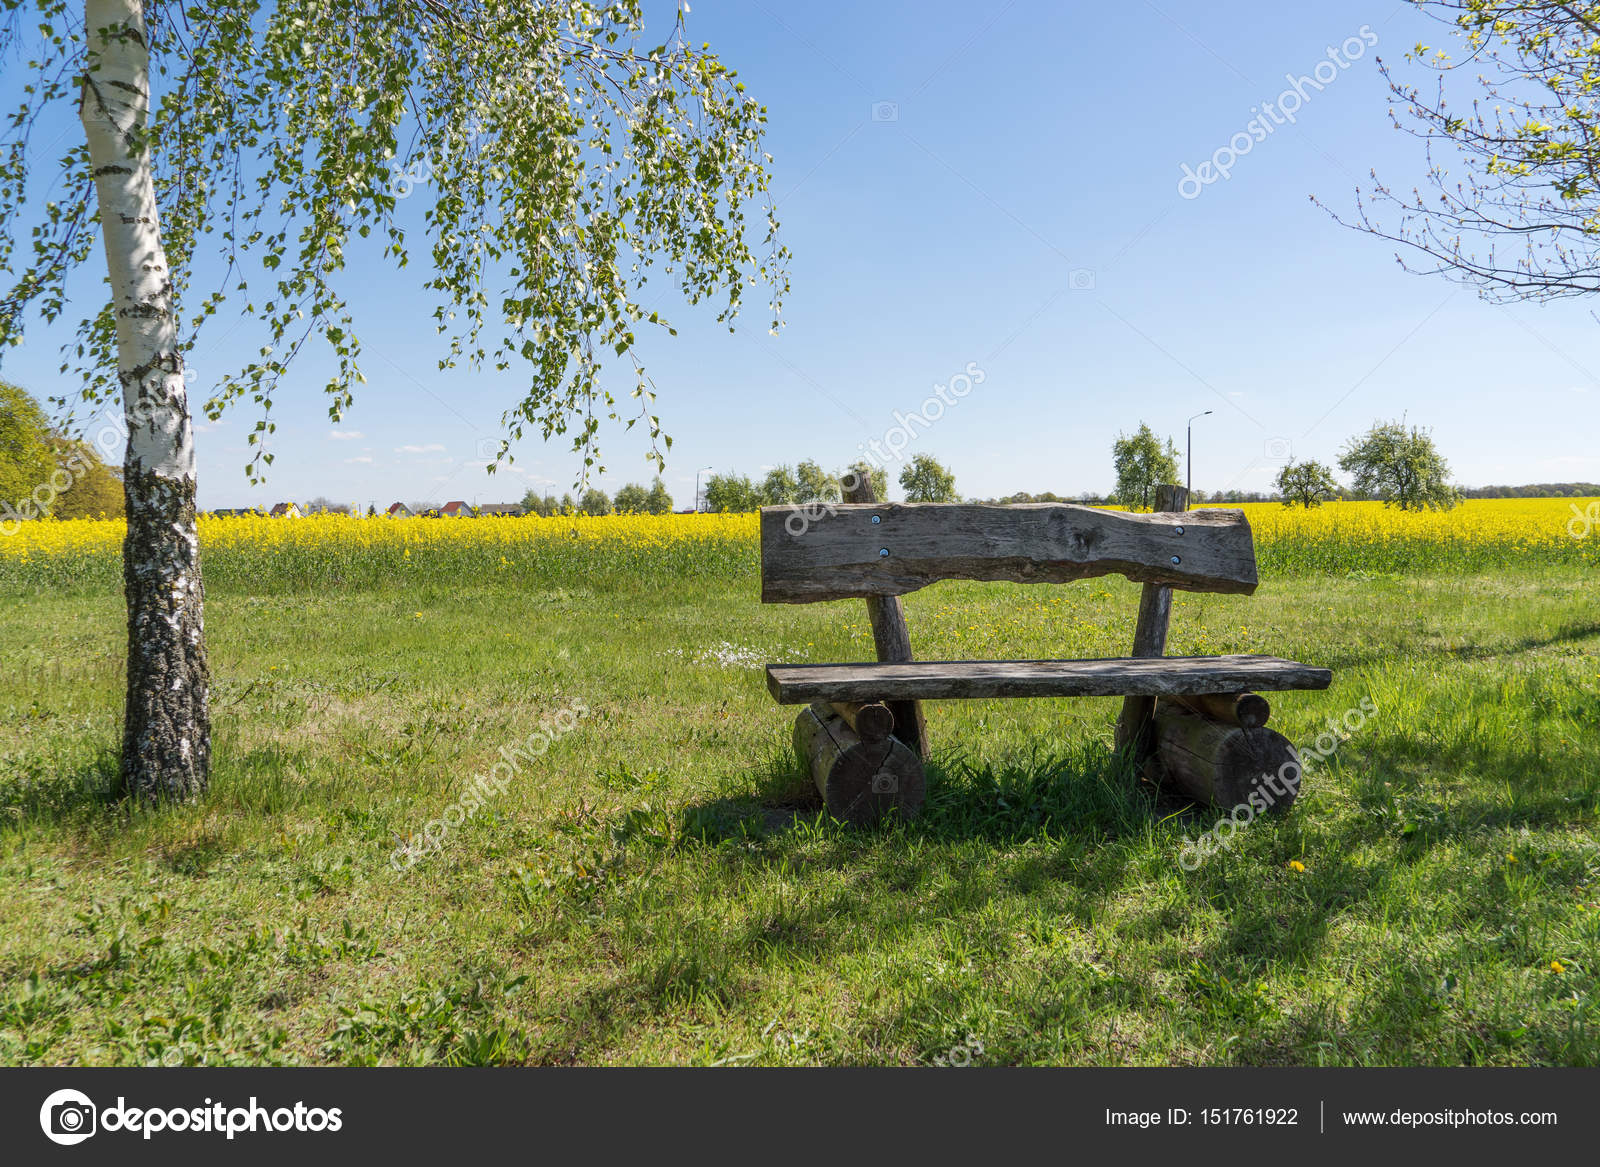 Pleasing Wooden Bench Outdoors Rape Field In The Background Stock Gmtry Best Dining Table And Chair Ideas Images Gmtryco